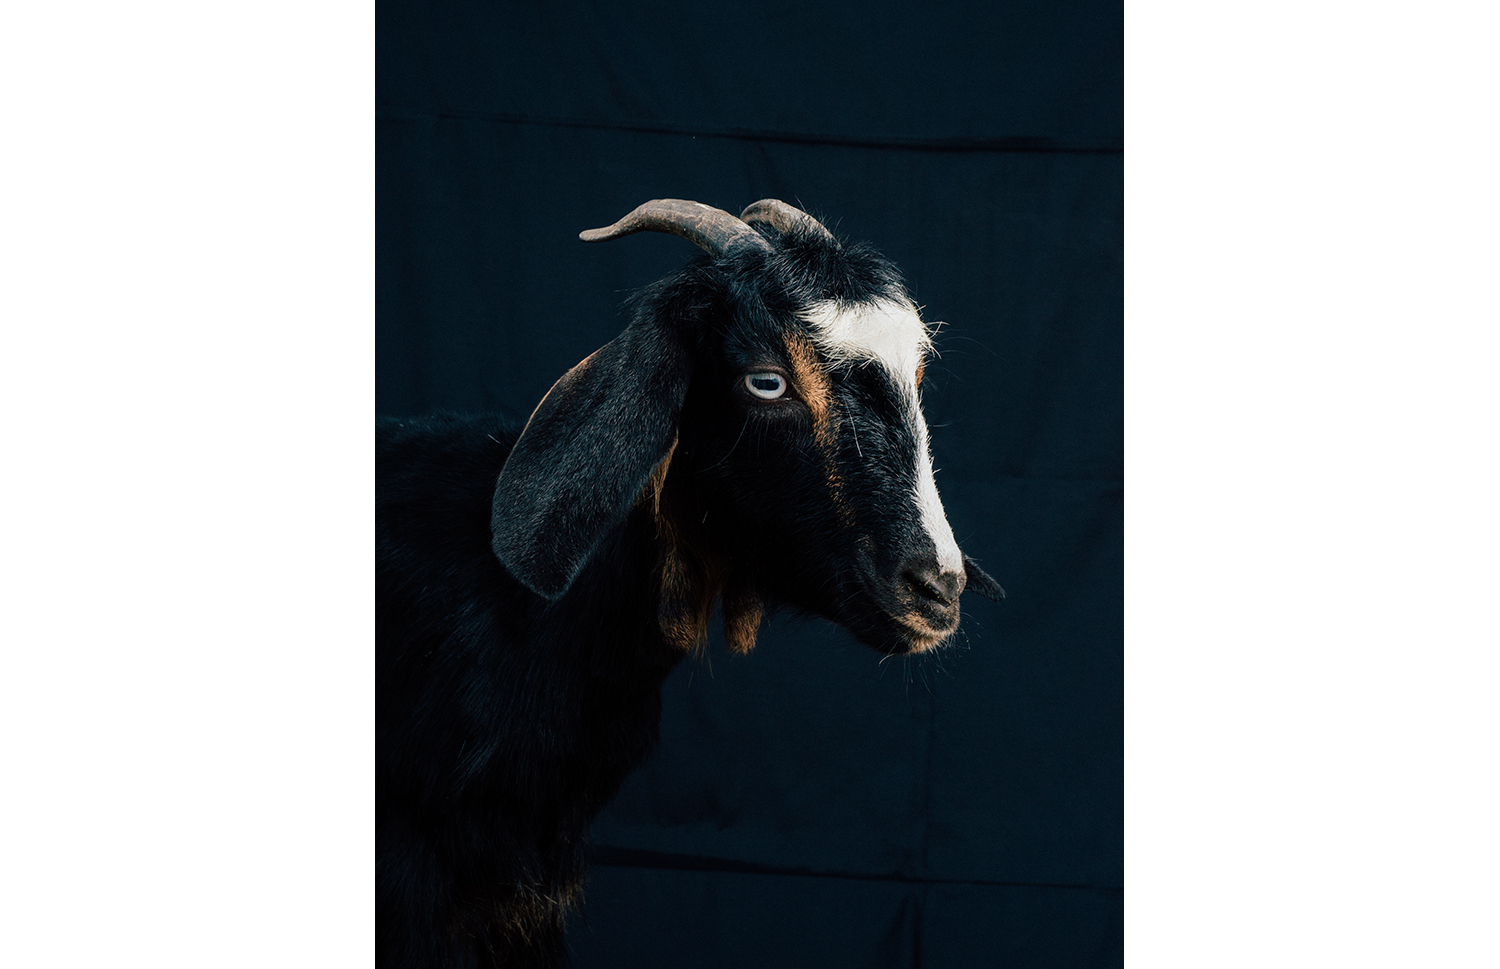 ijfkeridgley-oman-goat-portrait9.jpg